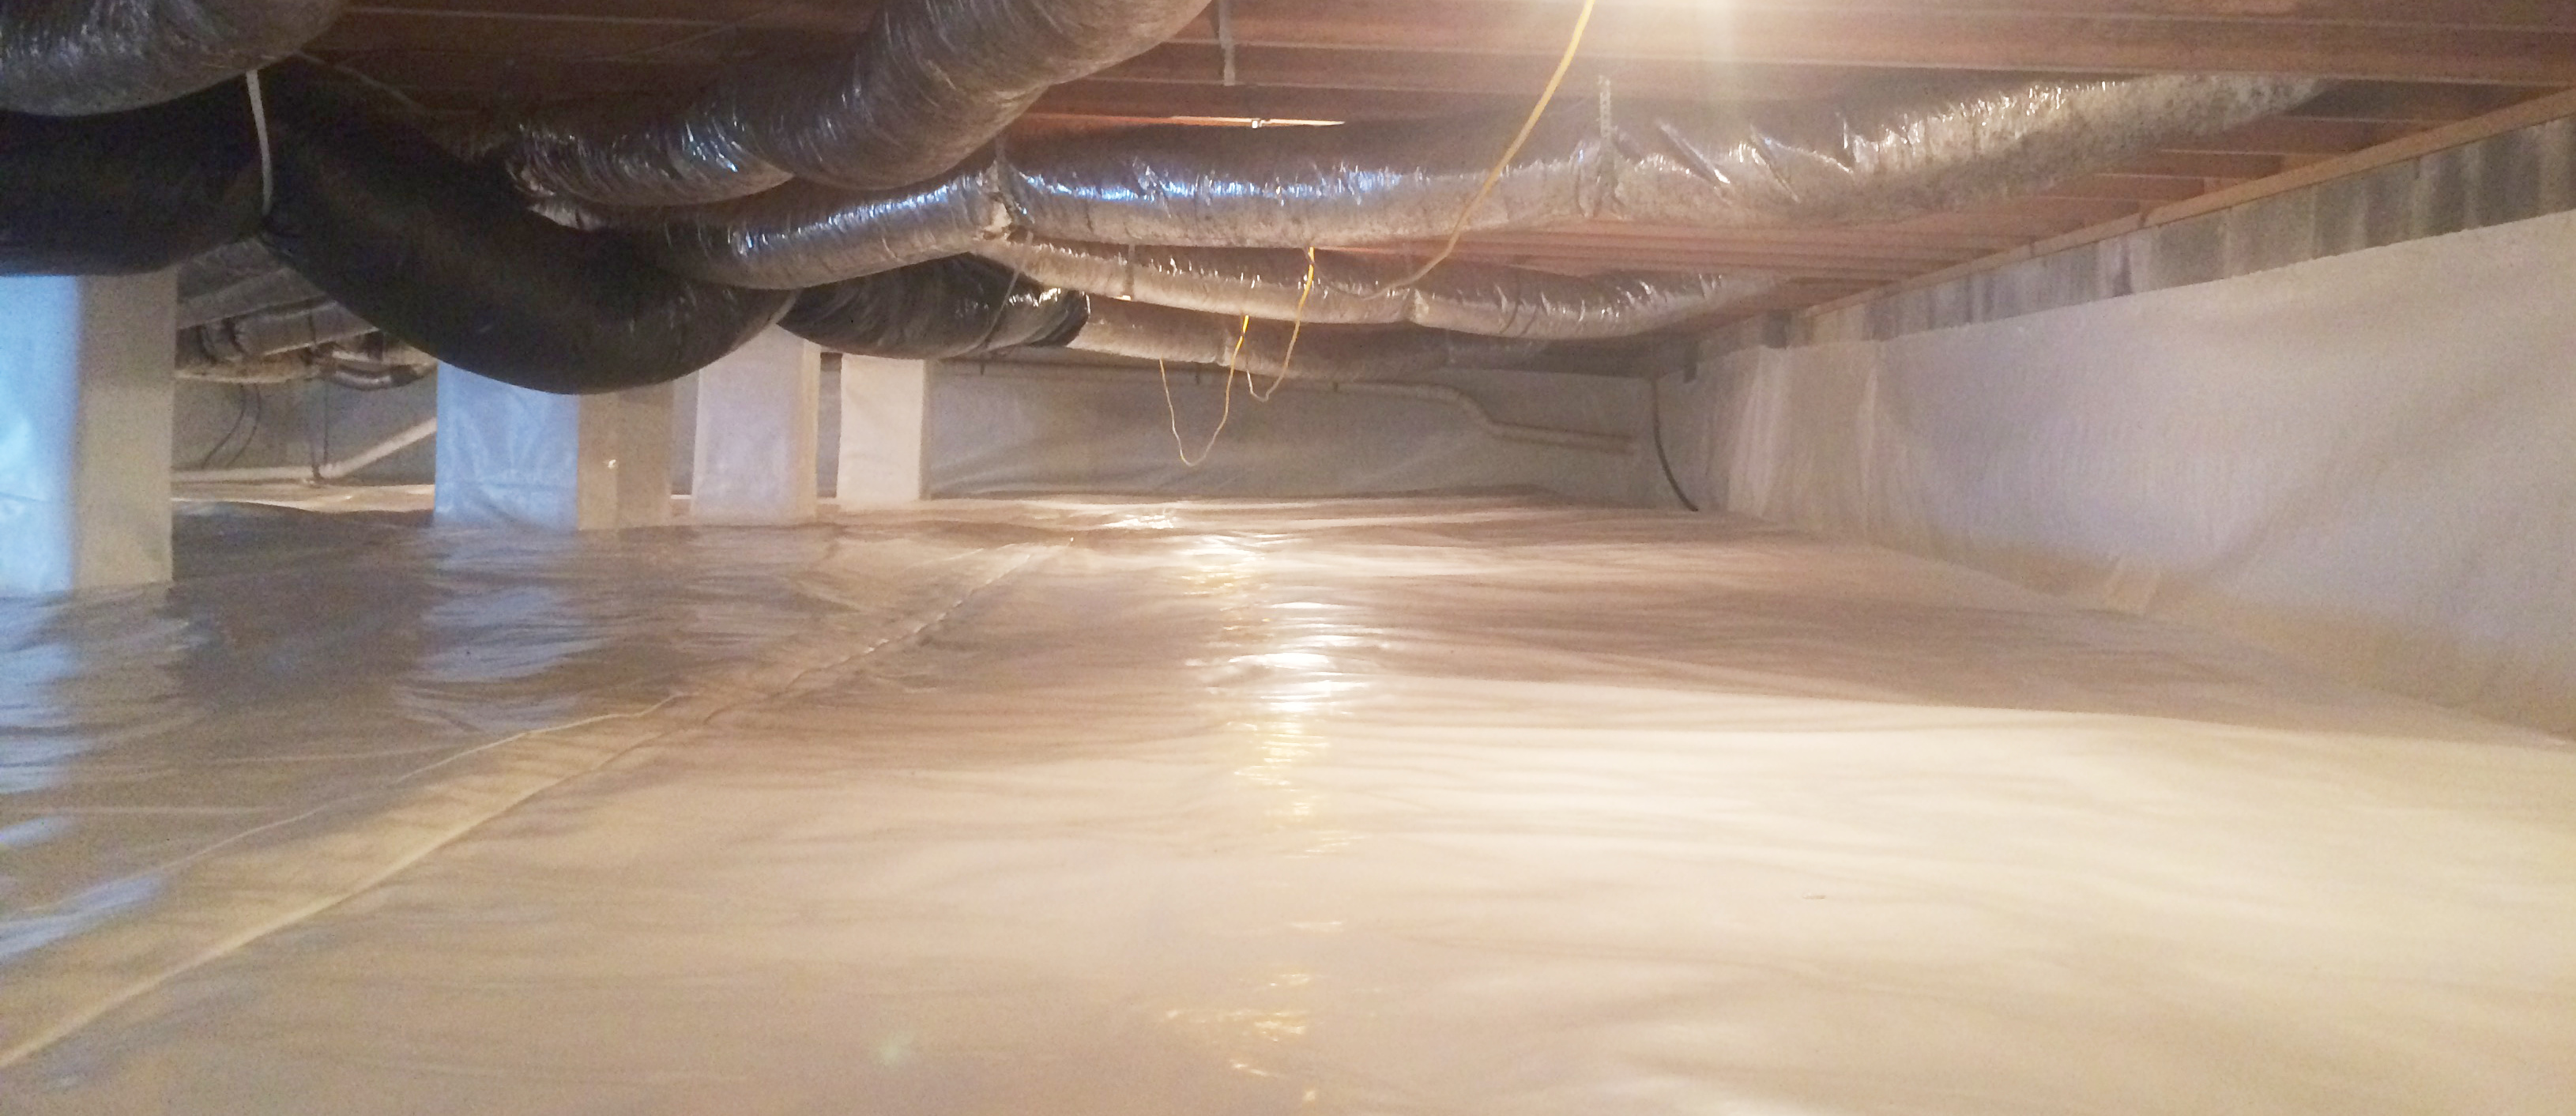 Crawl Space Waterproofing : Waterproofing a crawl space in northern virginia is